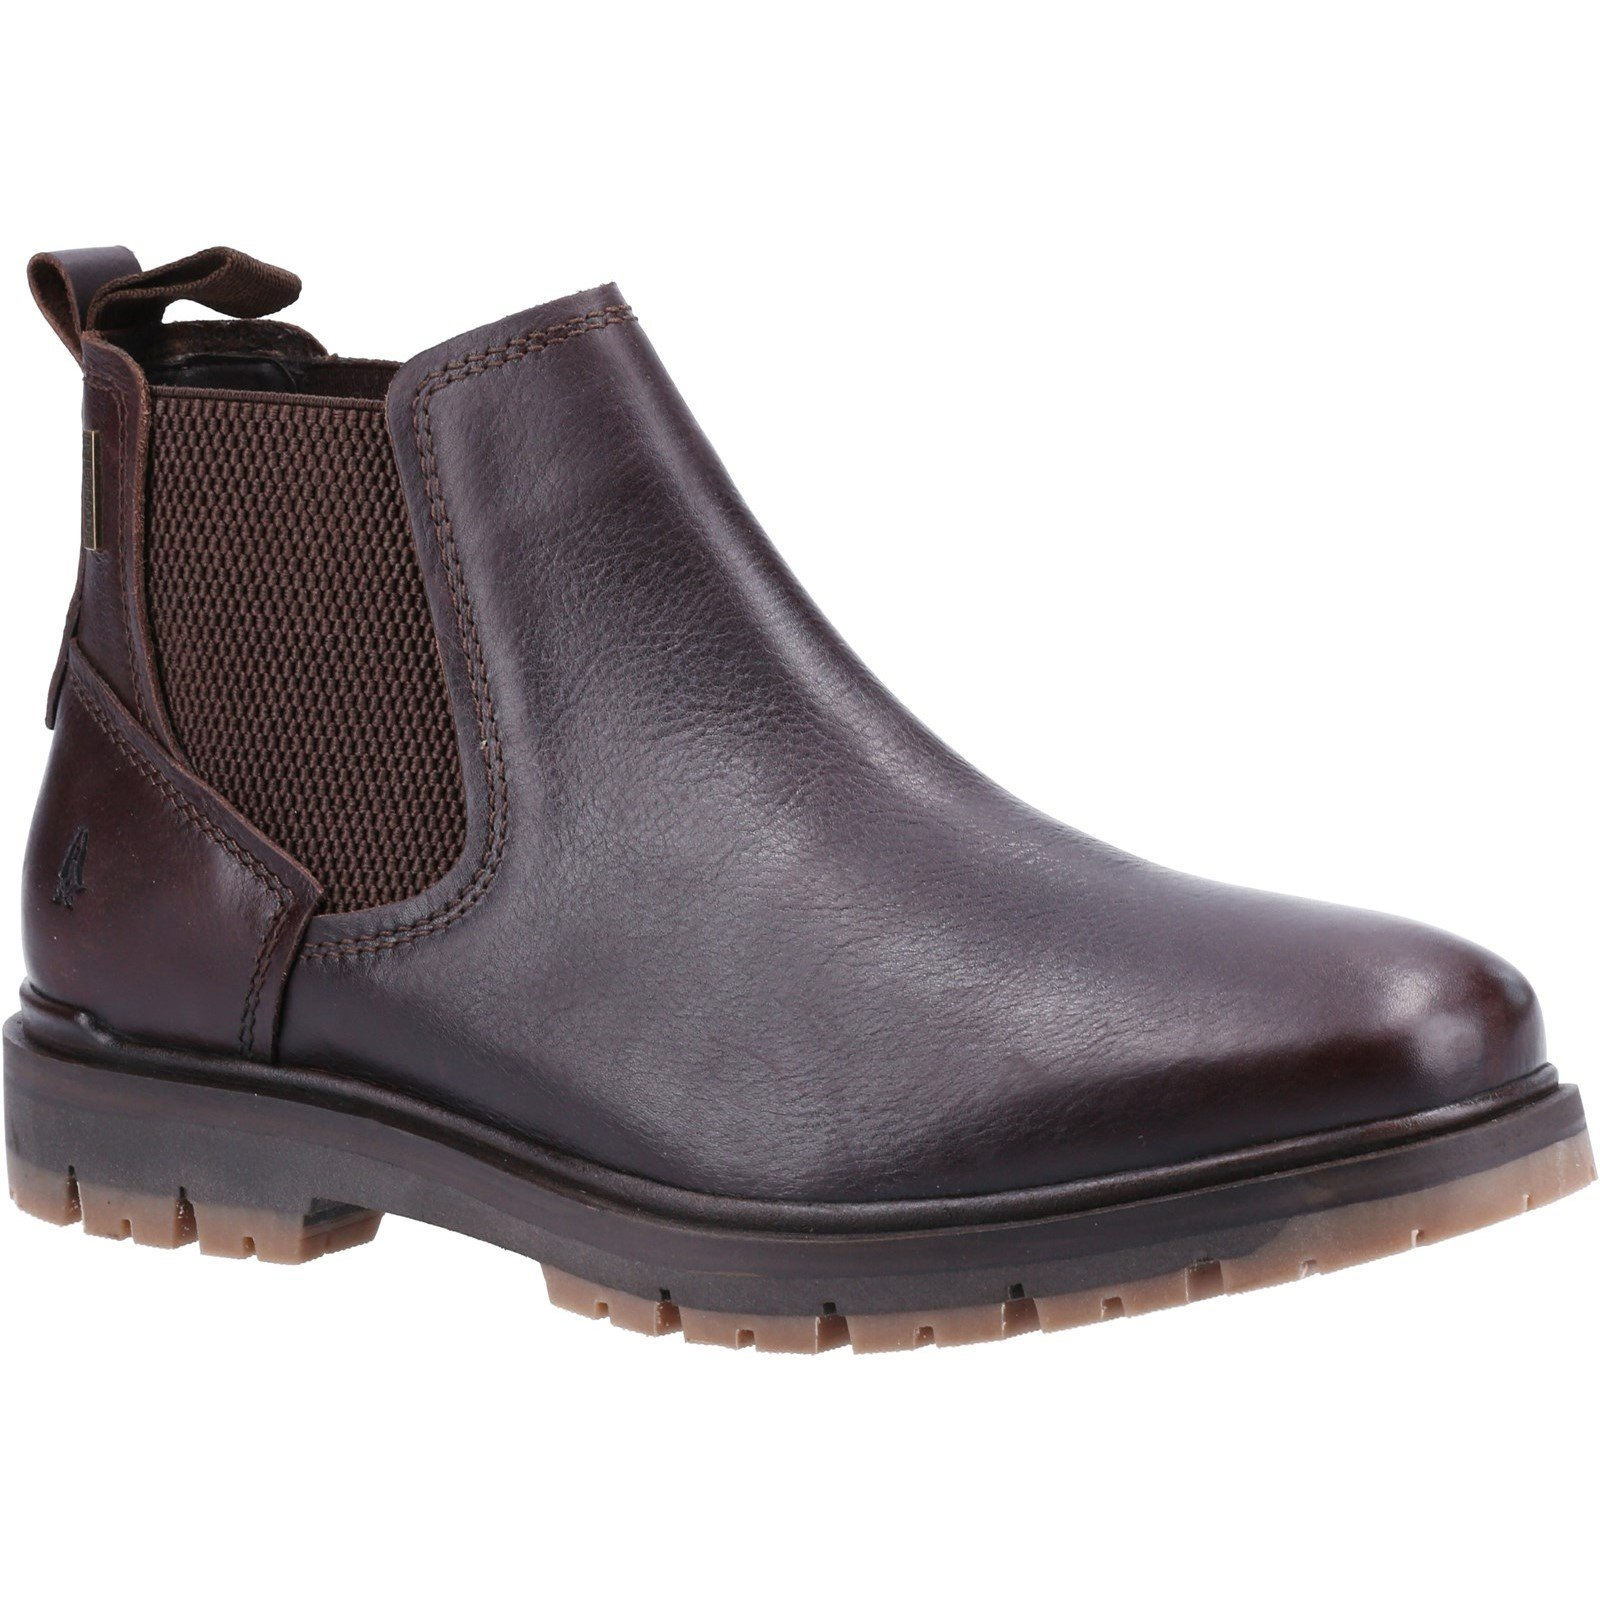 Hush Puppies Men's Paxton Chelsea Boot Various Colours 32882 - Brown 9